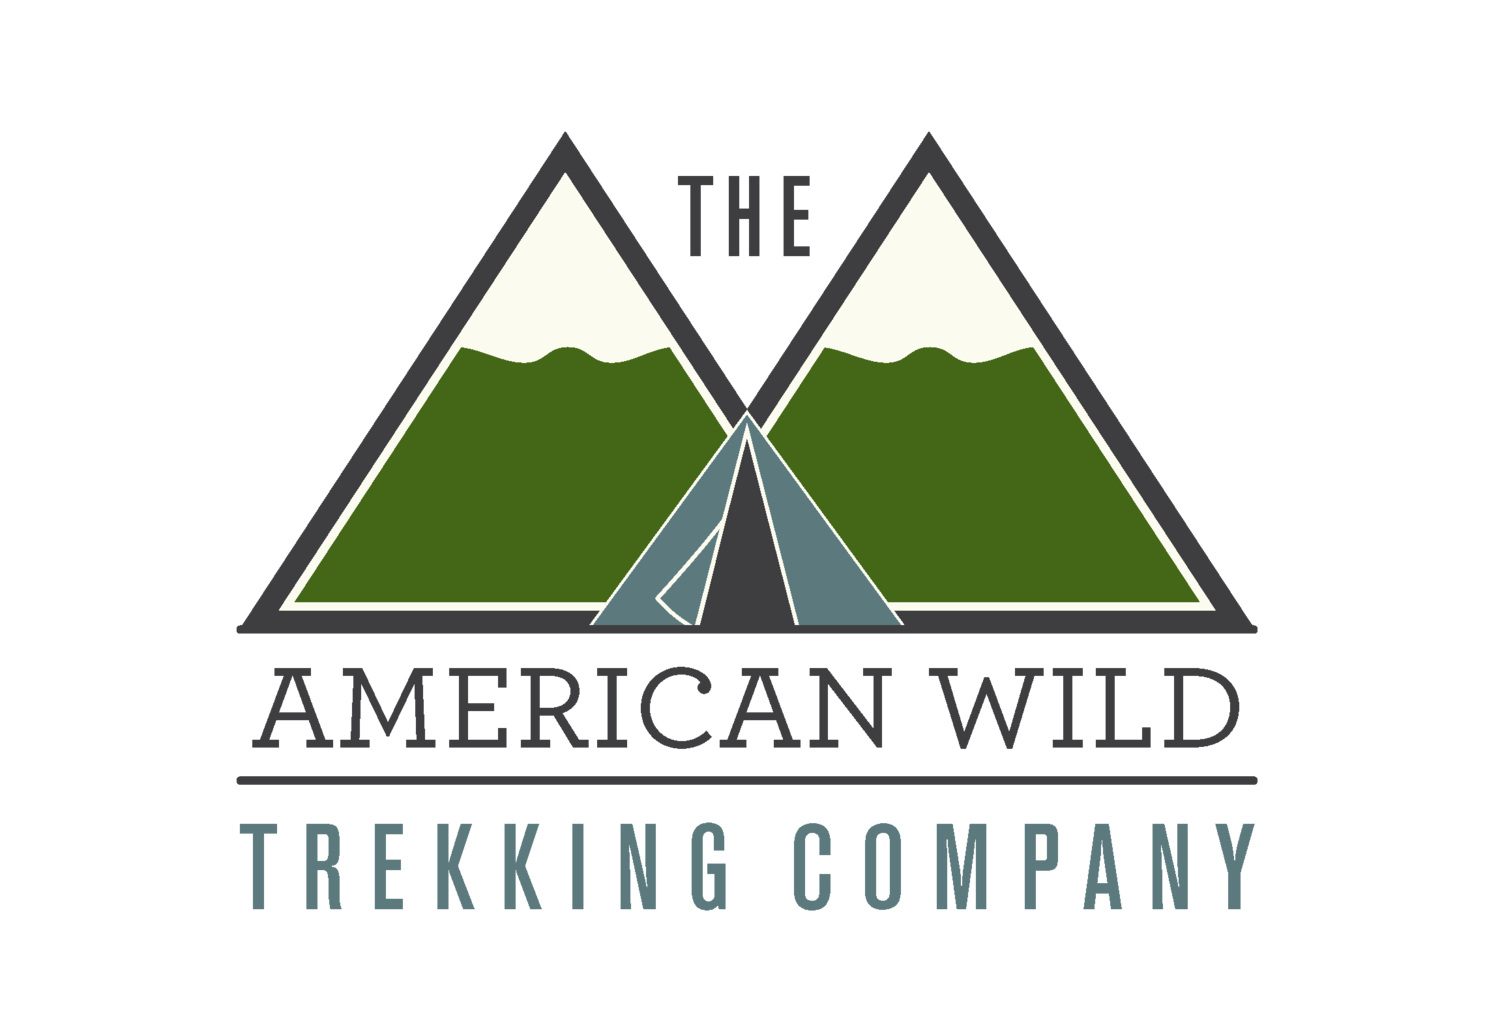 The American Wild Trekking Company Dancing With Dionysus The Call Of The Wild In The Heart Of Modern Man